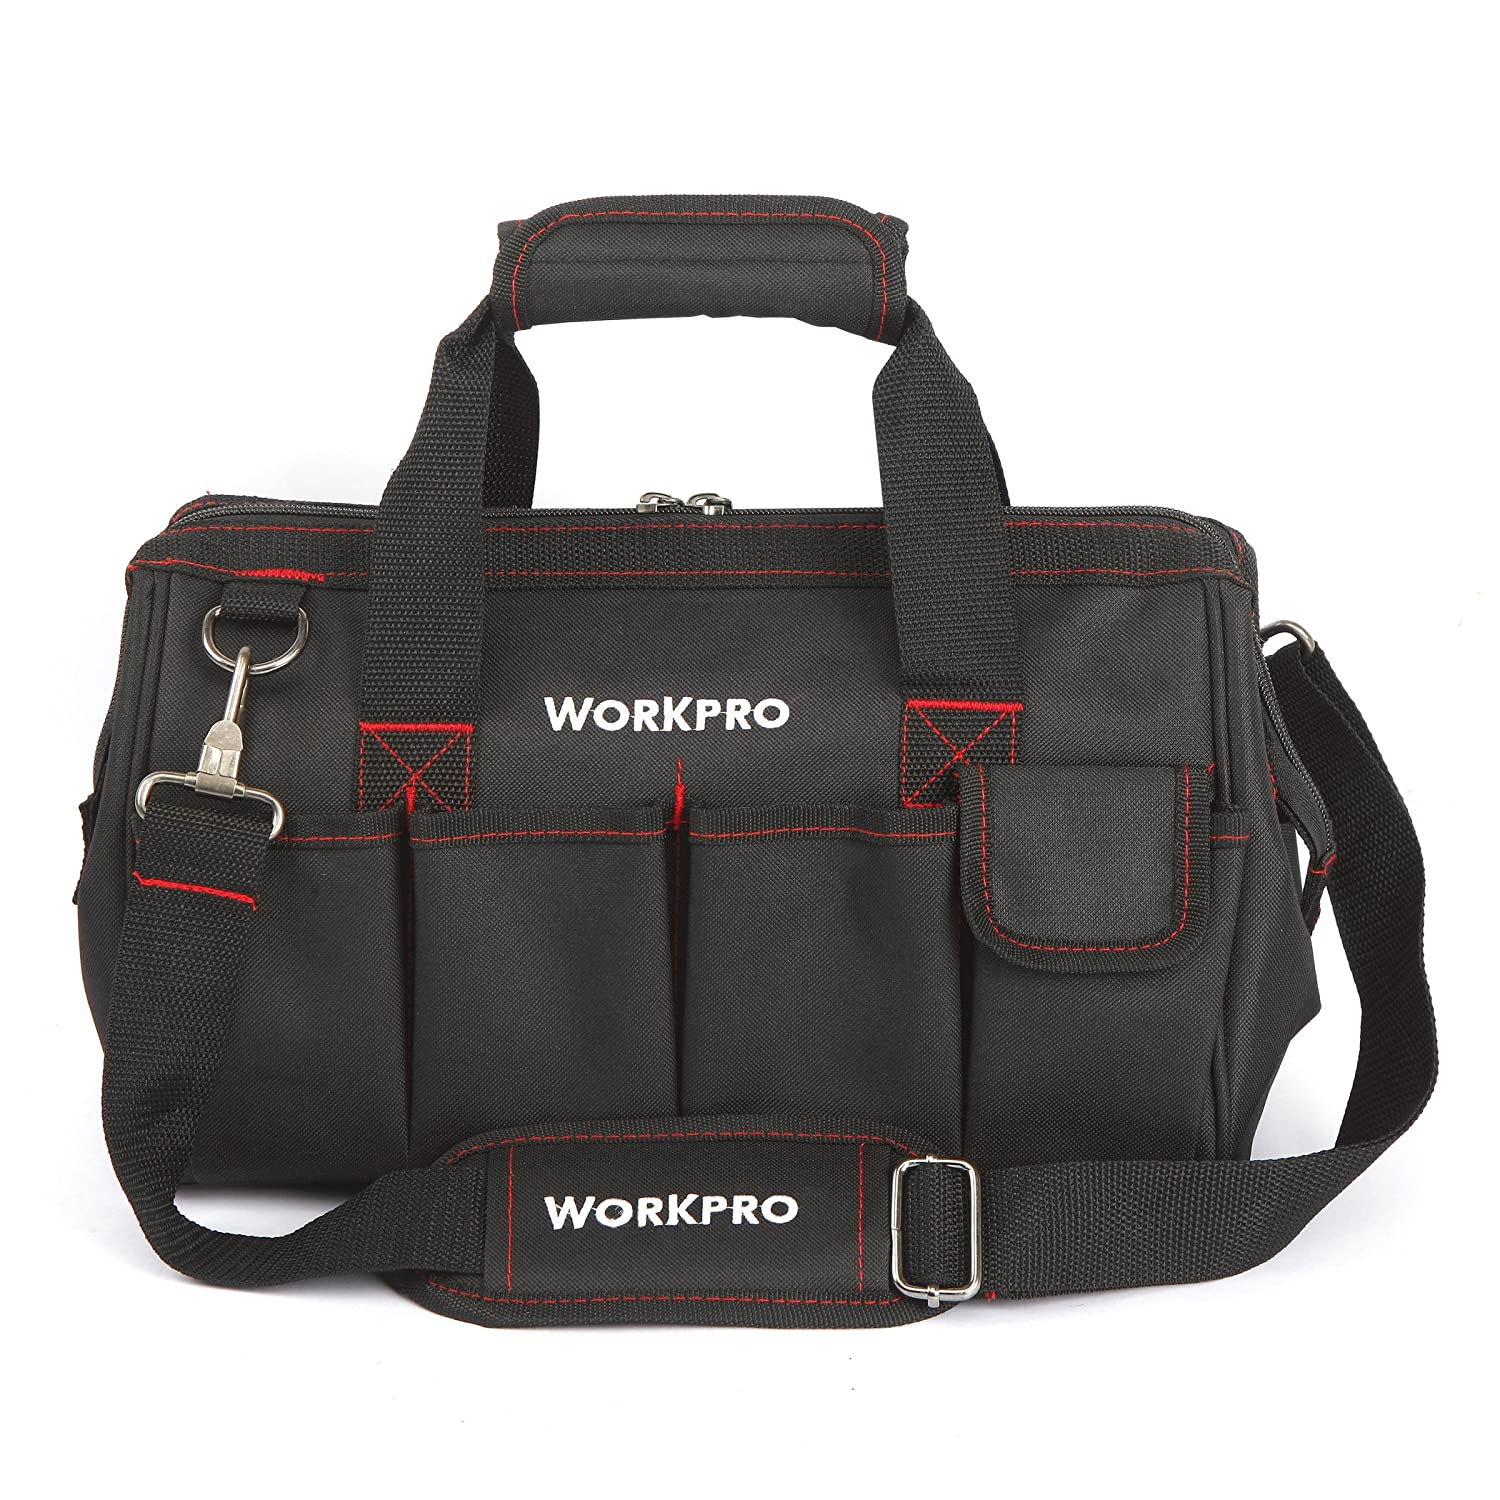 WORKPRO 12-Inch Tool Bag Small Tool Bag Organiser Muti-Purpose Wide Open Mouth Storage Bag with Adjustable Shoulder Strap Hangzhou Great Star Industrial Co. LTD. W136005A